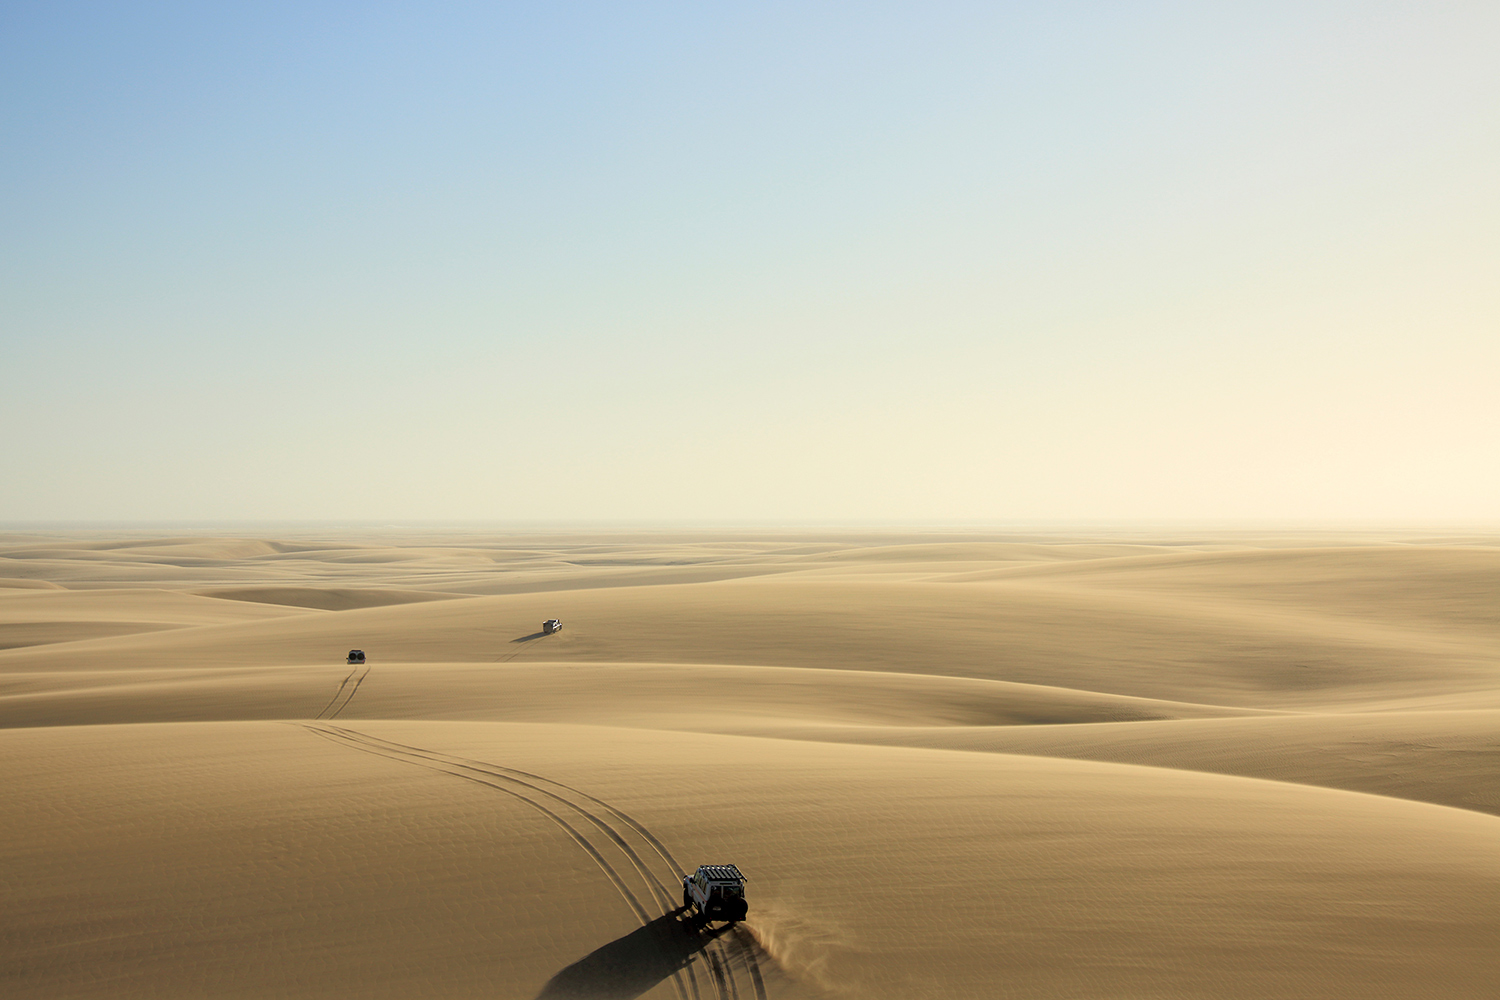 Bruce Dorn photography, shows cars driving across a sandy desert from a high perspective.